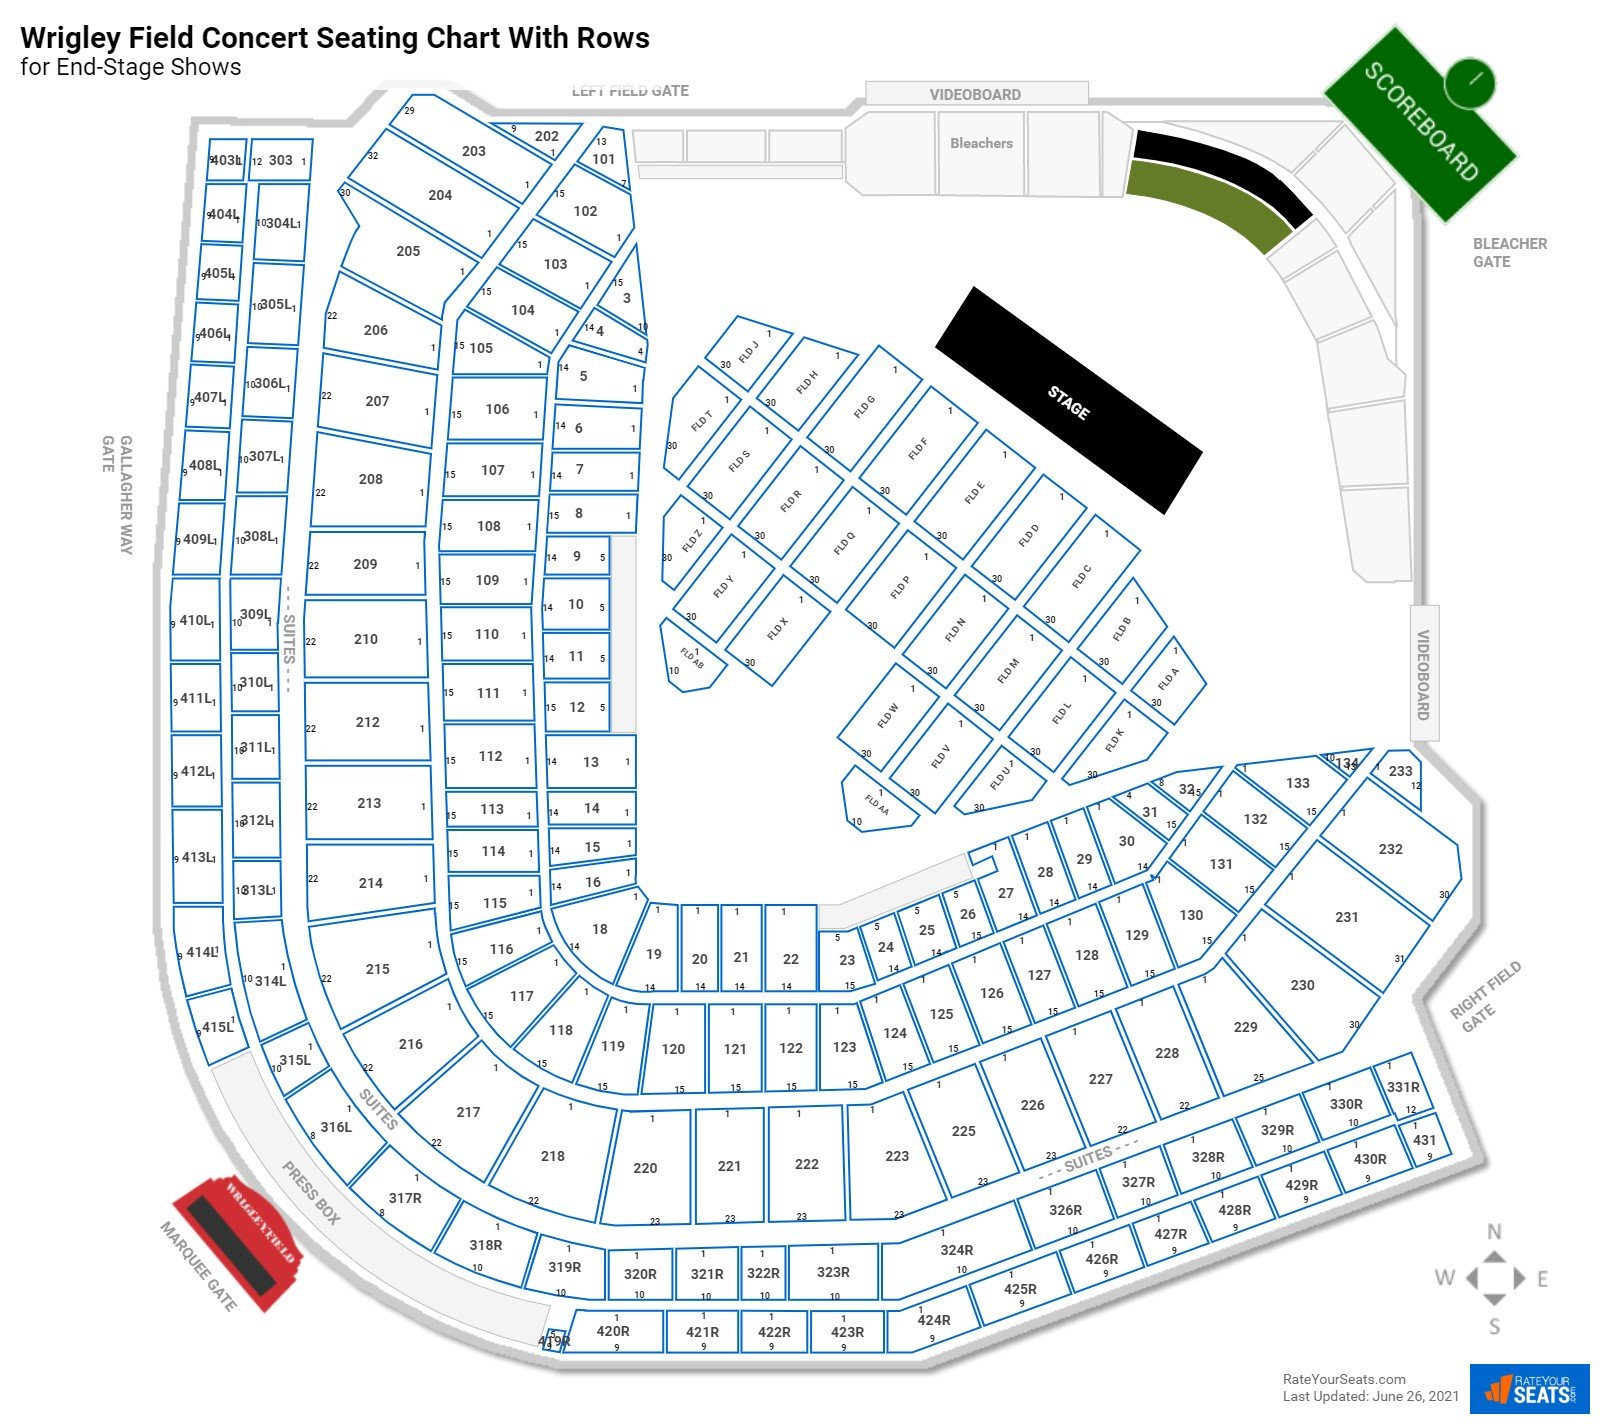 Wrigley Field seating chart with rows concert